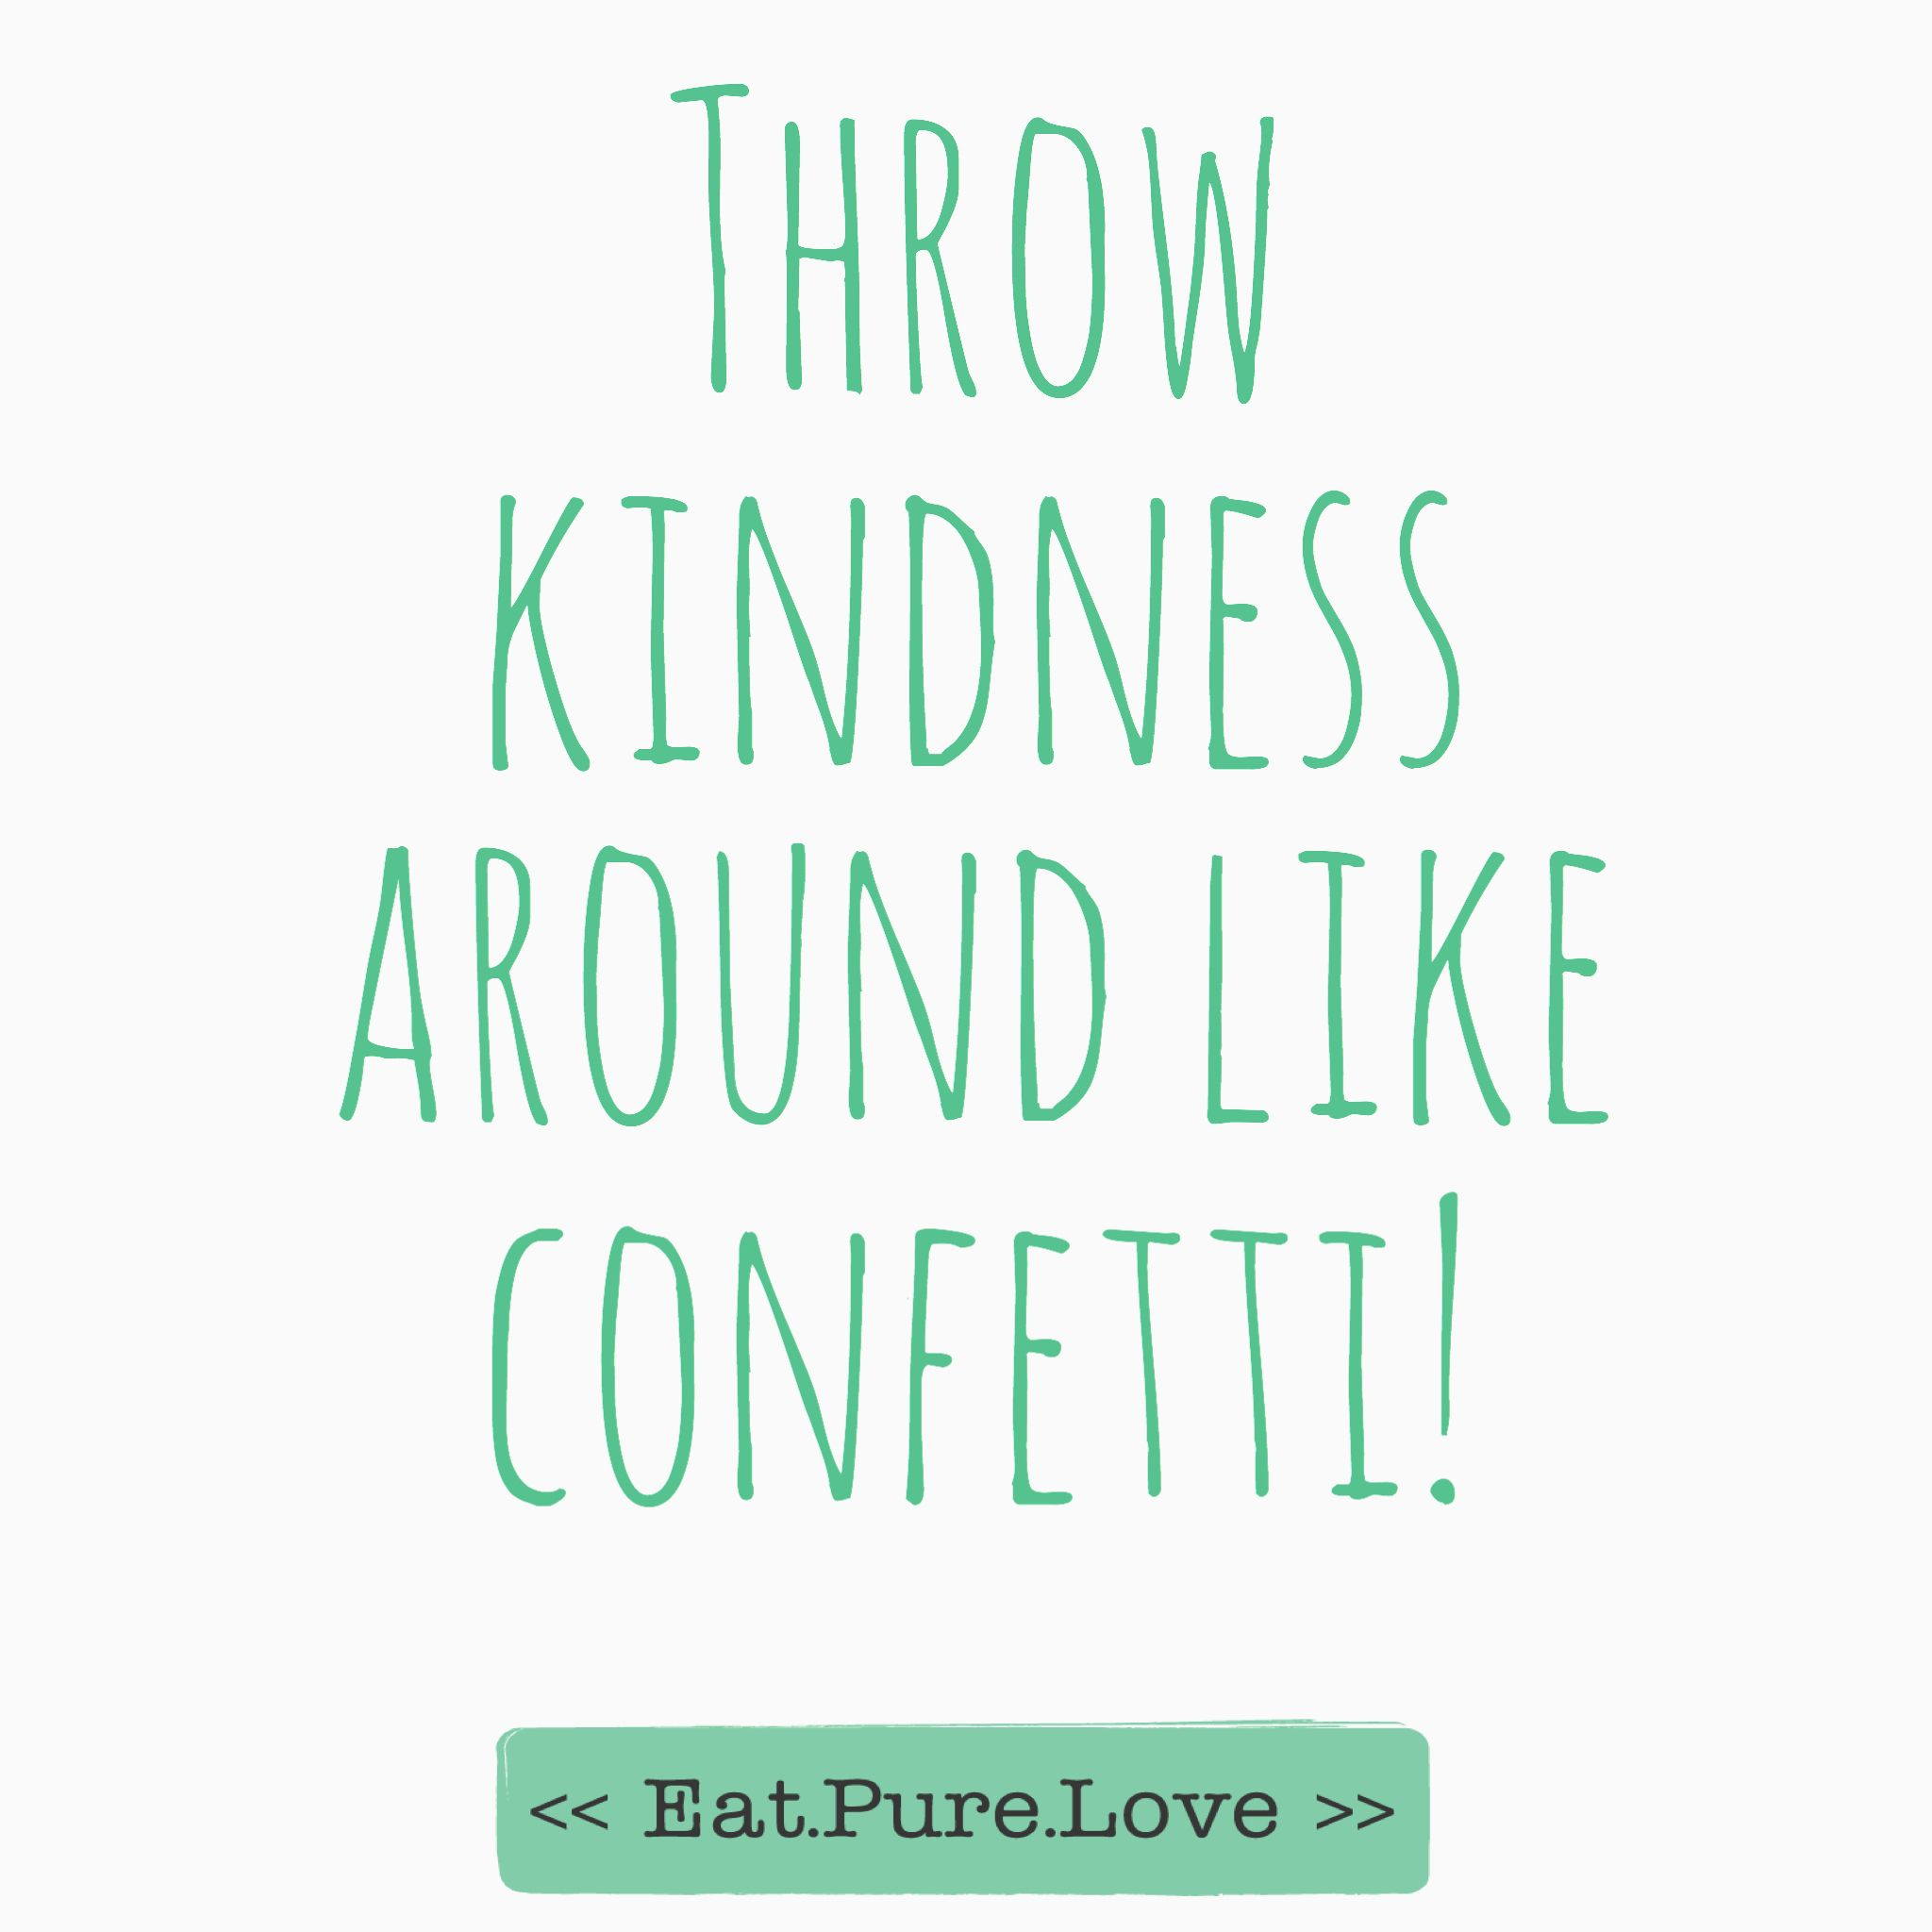 Quote About Kindness For More Quotes Check Httpwww.eatpurelove.nlquotes